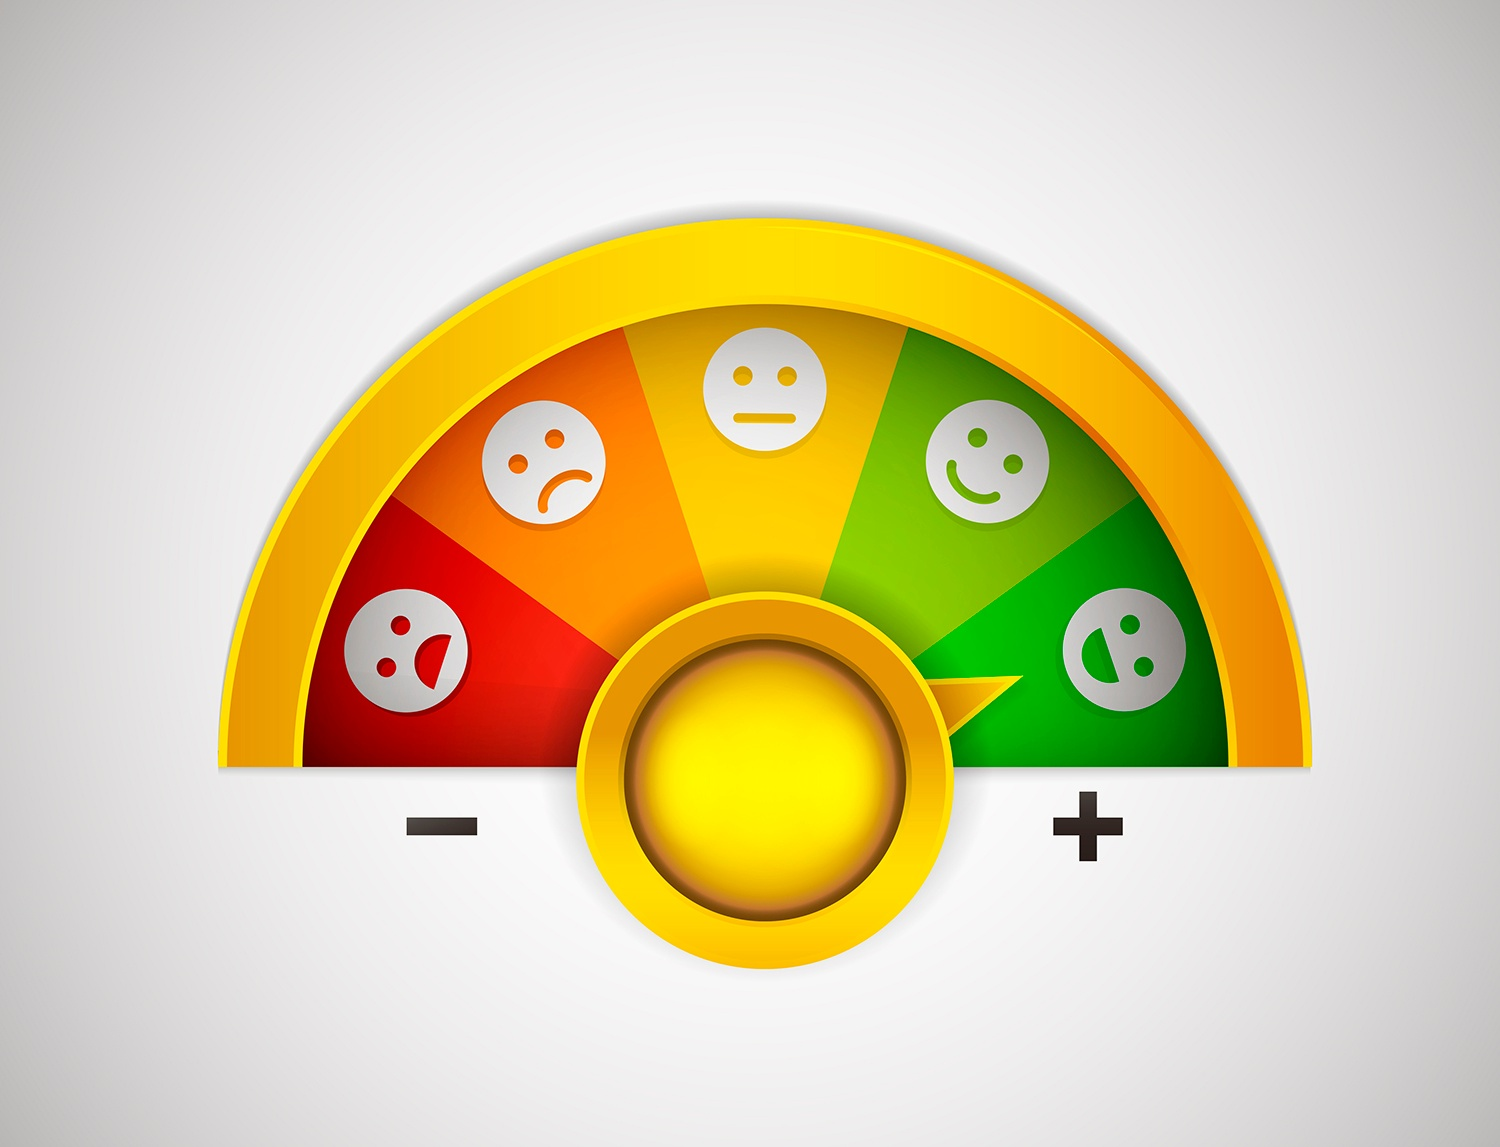 Making the Net Promoter Score Actionable for Customer Experience Measurement